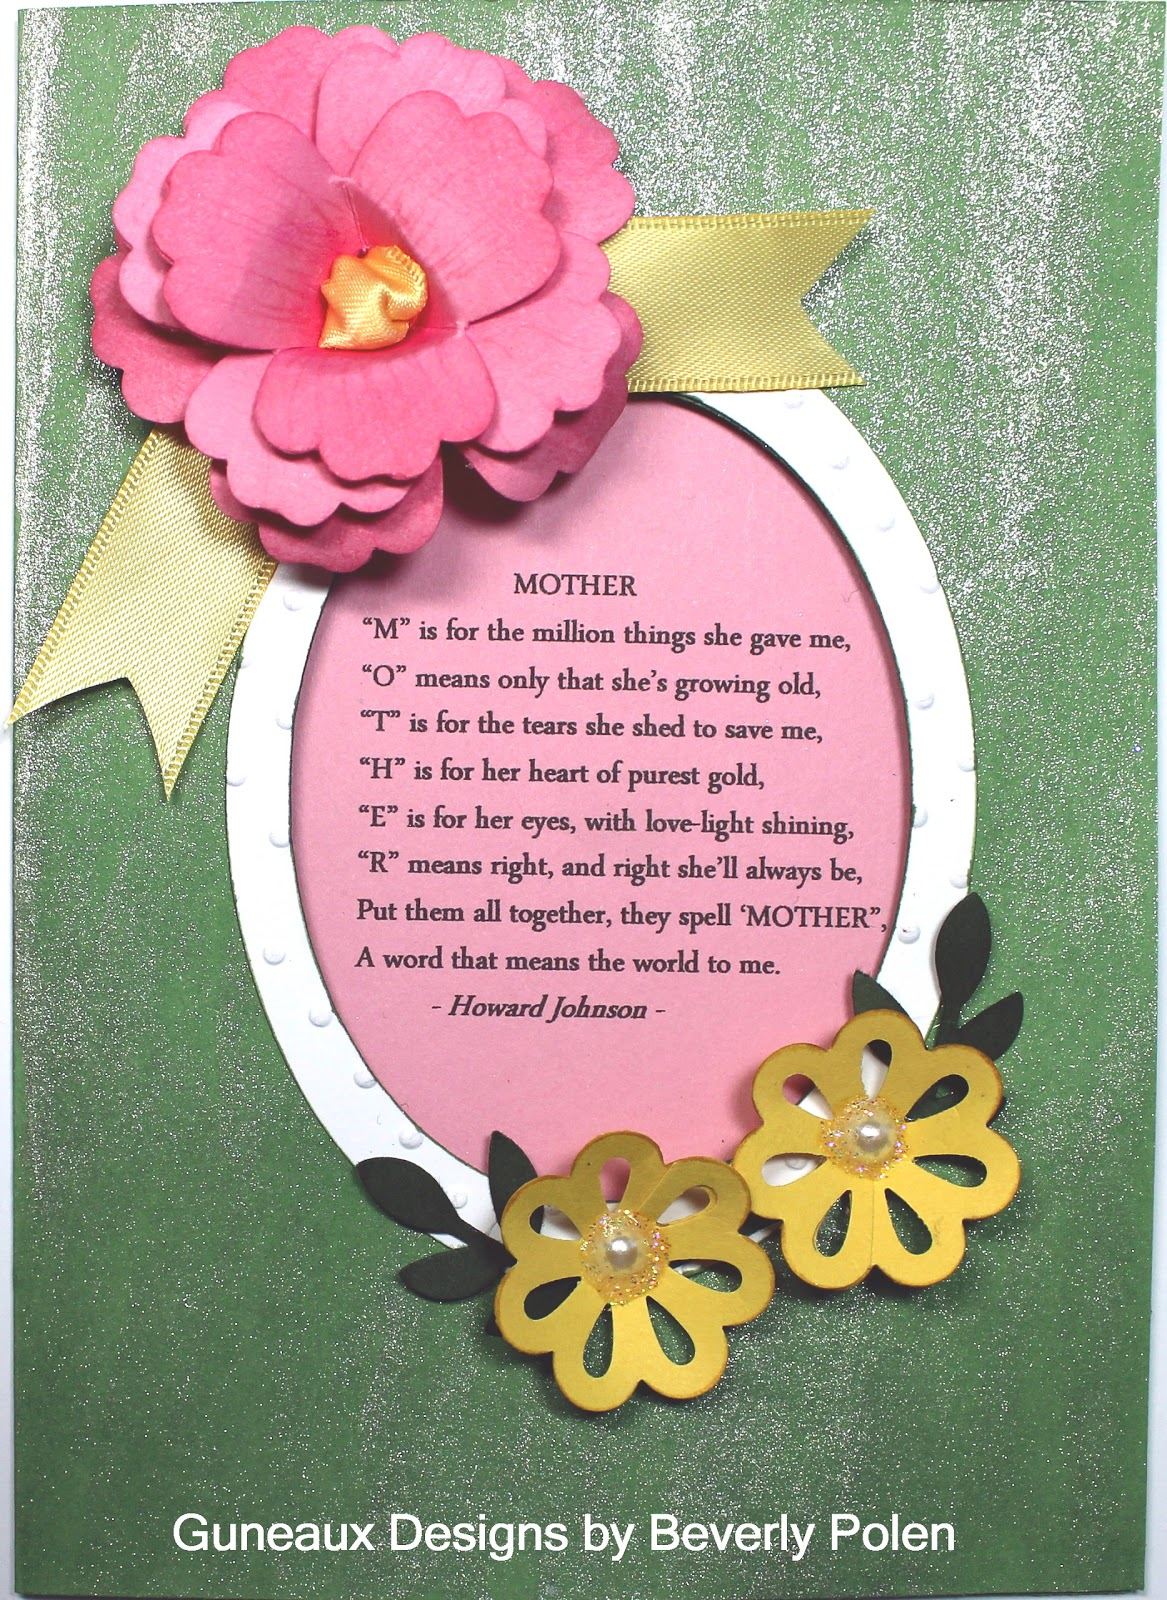 Guneaux Designs By Beverly Polen Mother Mothers Day Card 2012